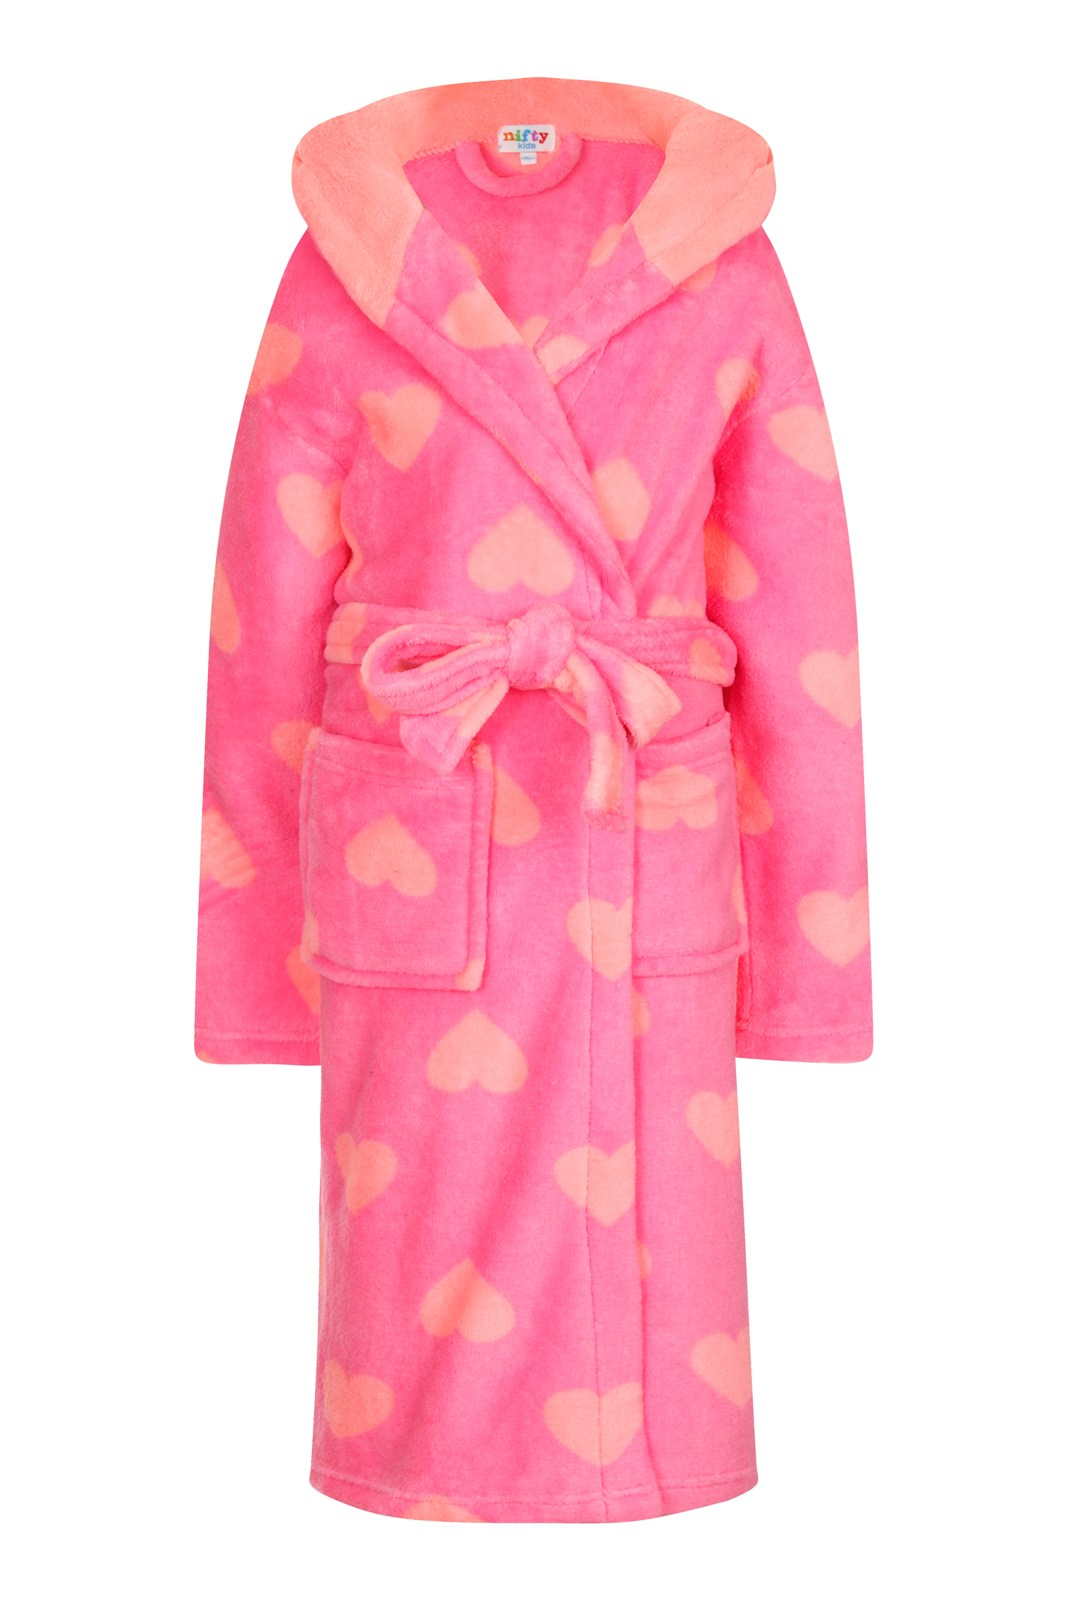 Kids Boys Girls Fleece Dressing Gown Bath Robe Wrap House Coat ...